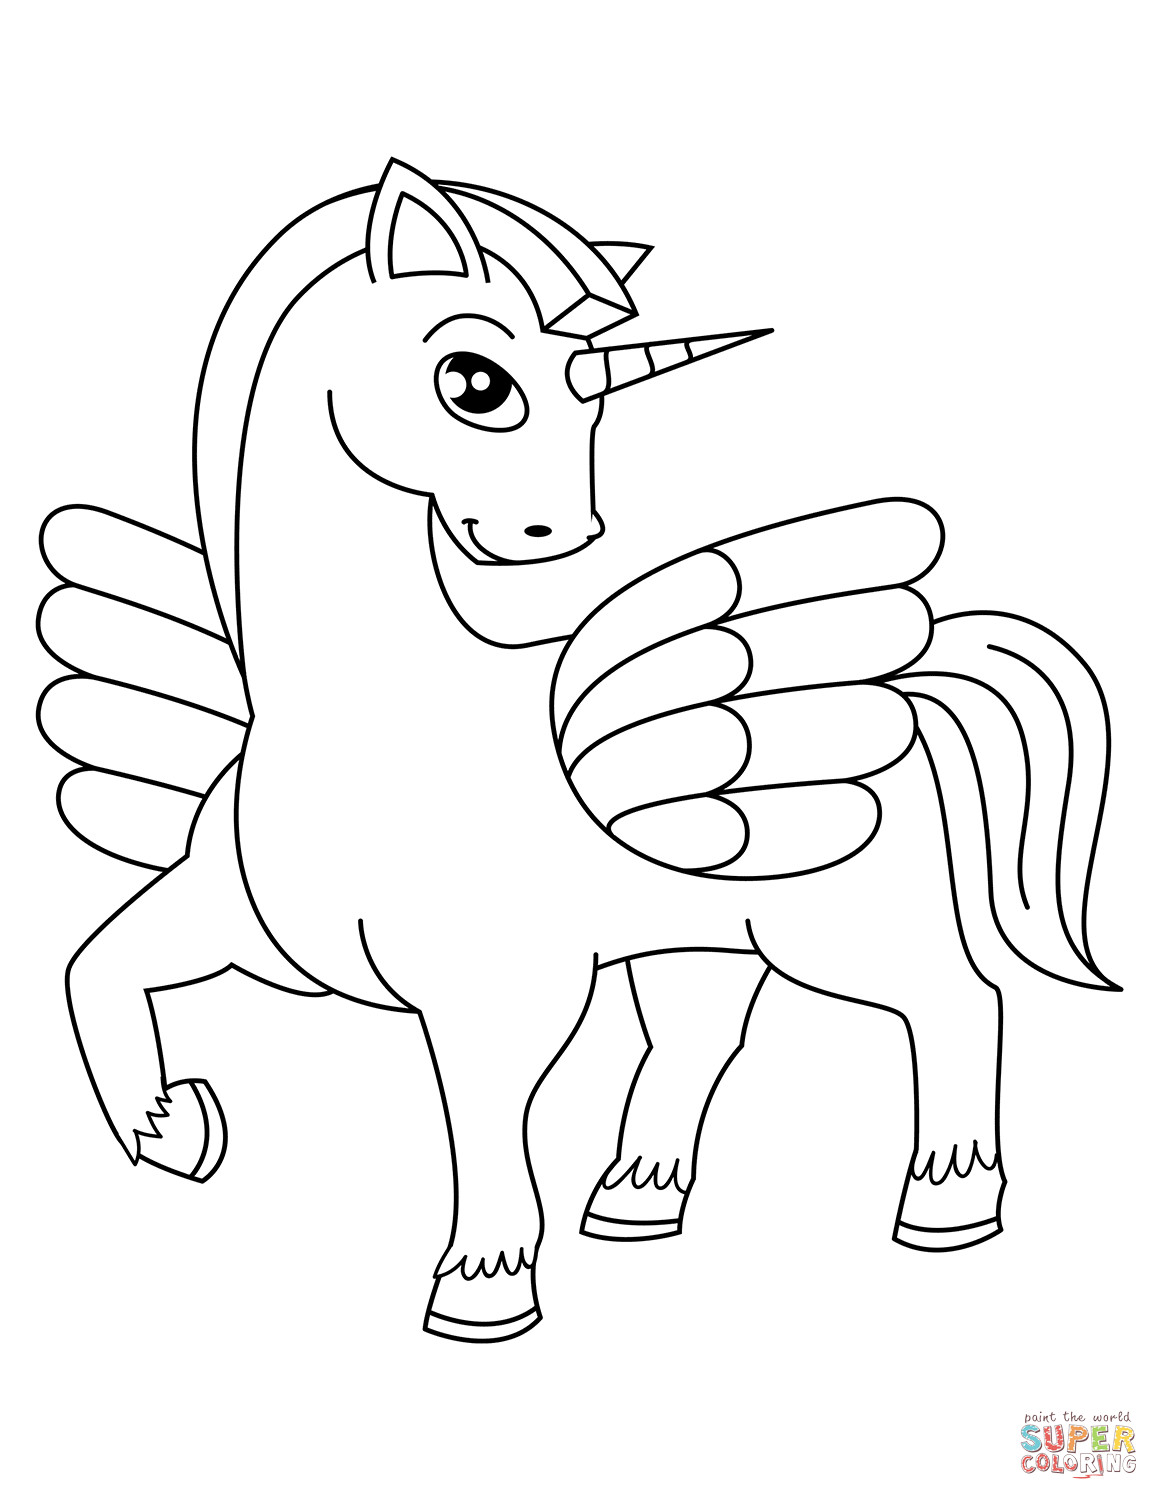 Best ideas about Coloring Pages For Kids To Print Unicorn . Save or Pin Cute Winged Unicorn coloring page Now.